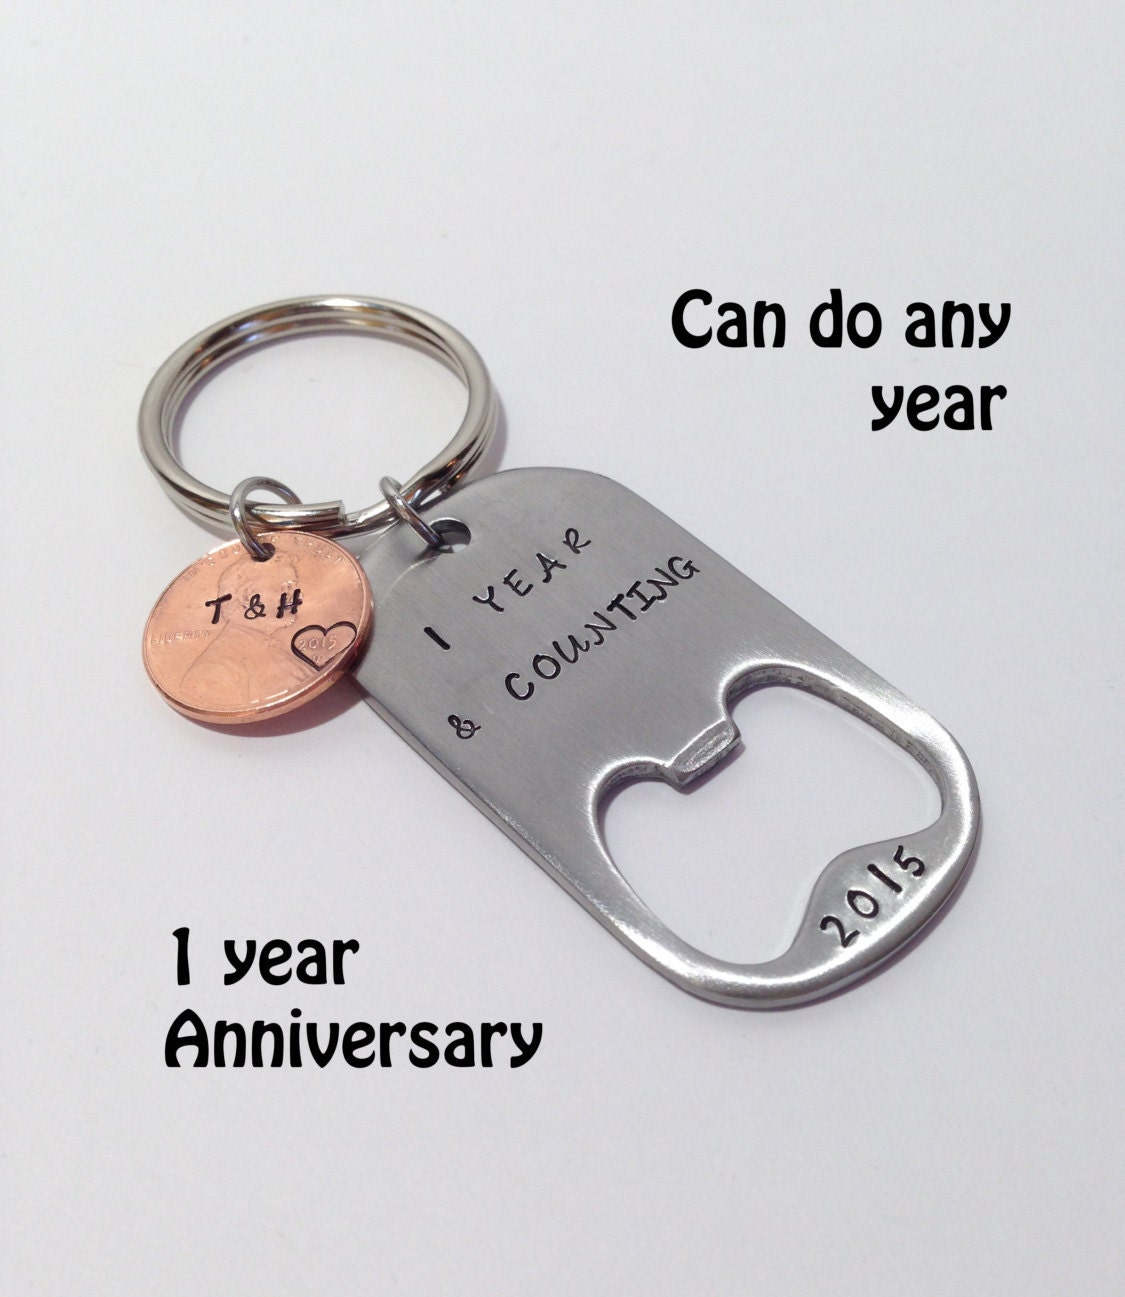 Year anniversary gift for him personalized penny keychain